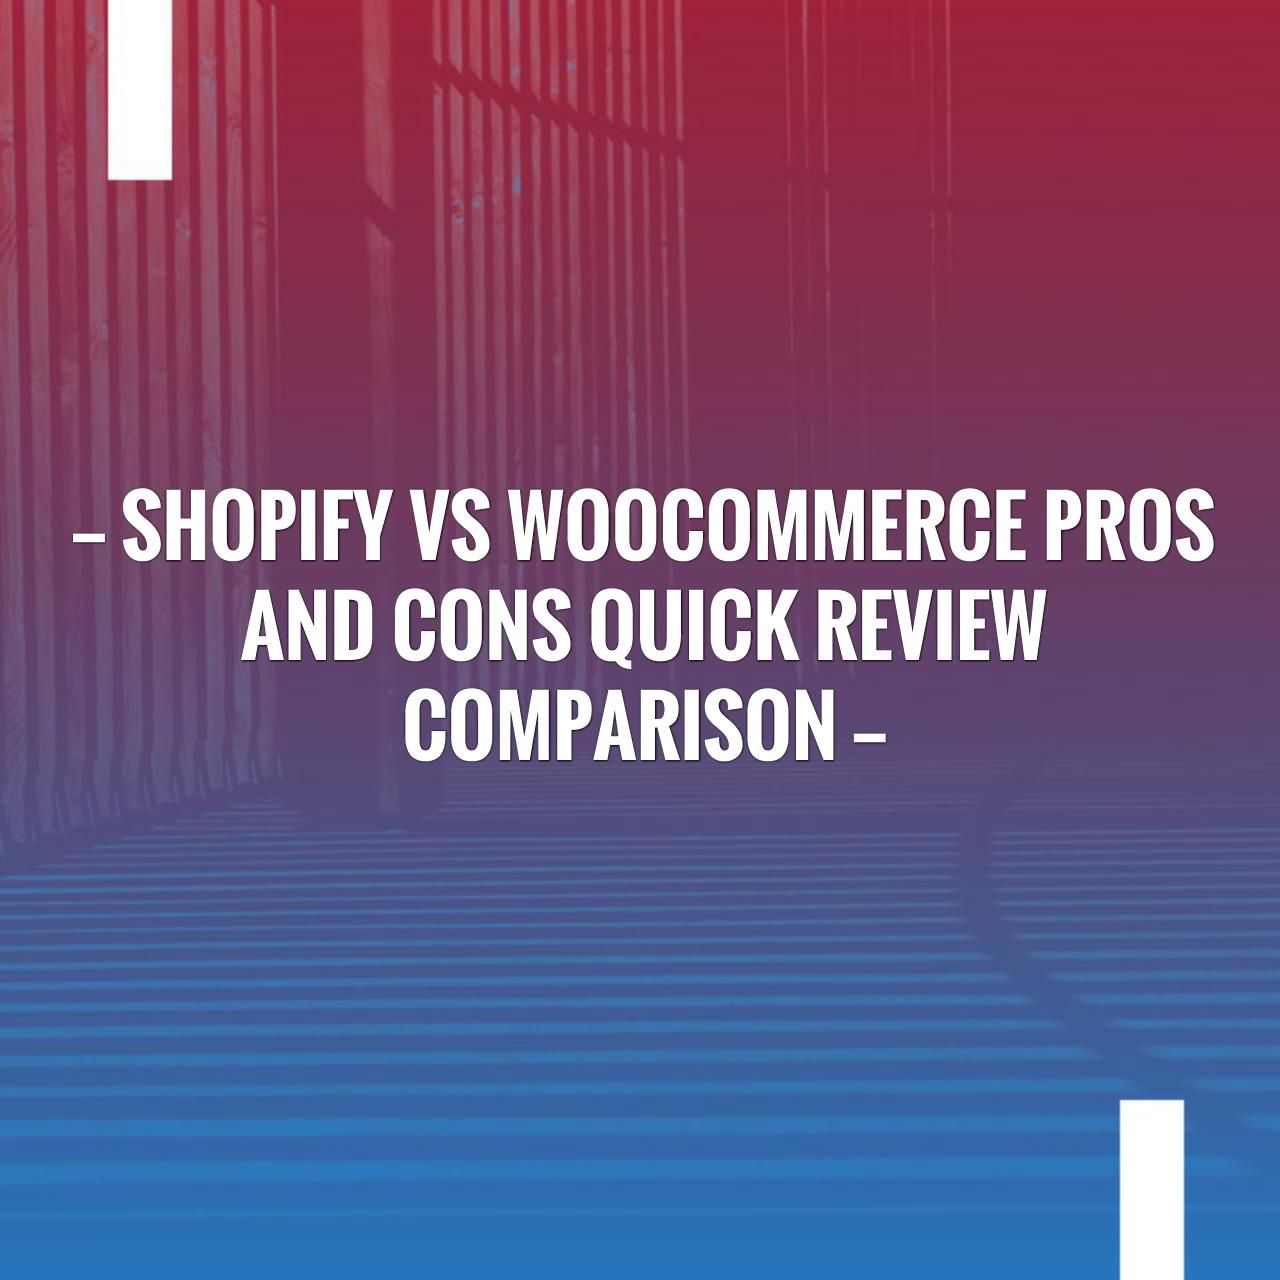 Shopify vs pros and cons quick review